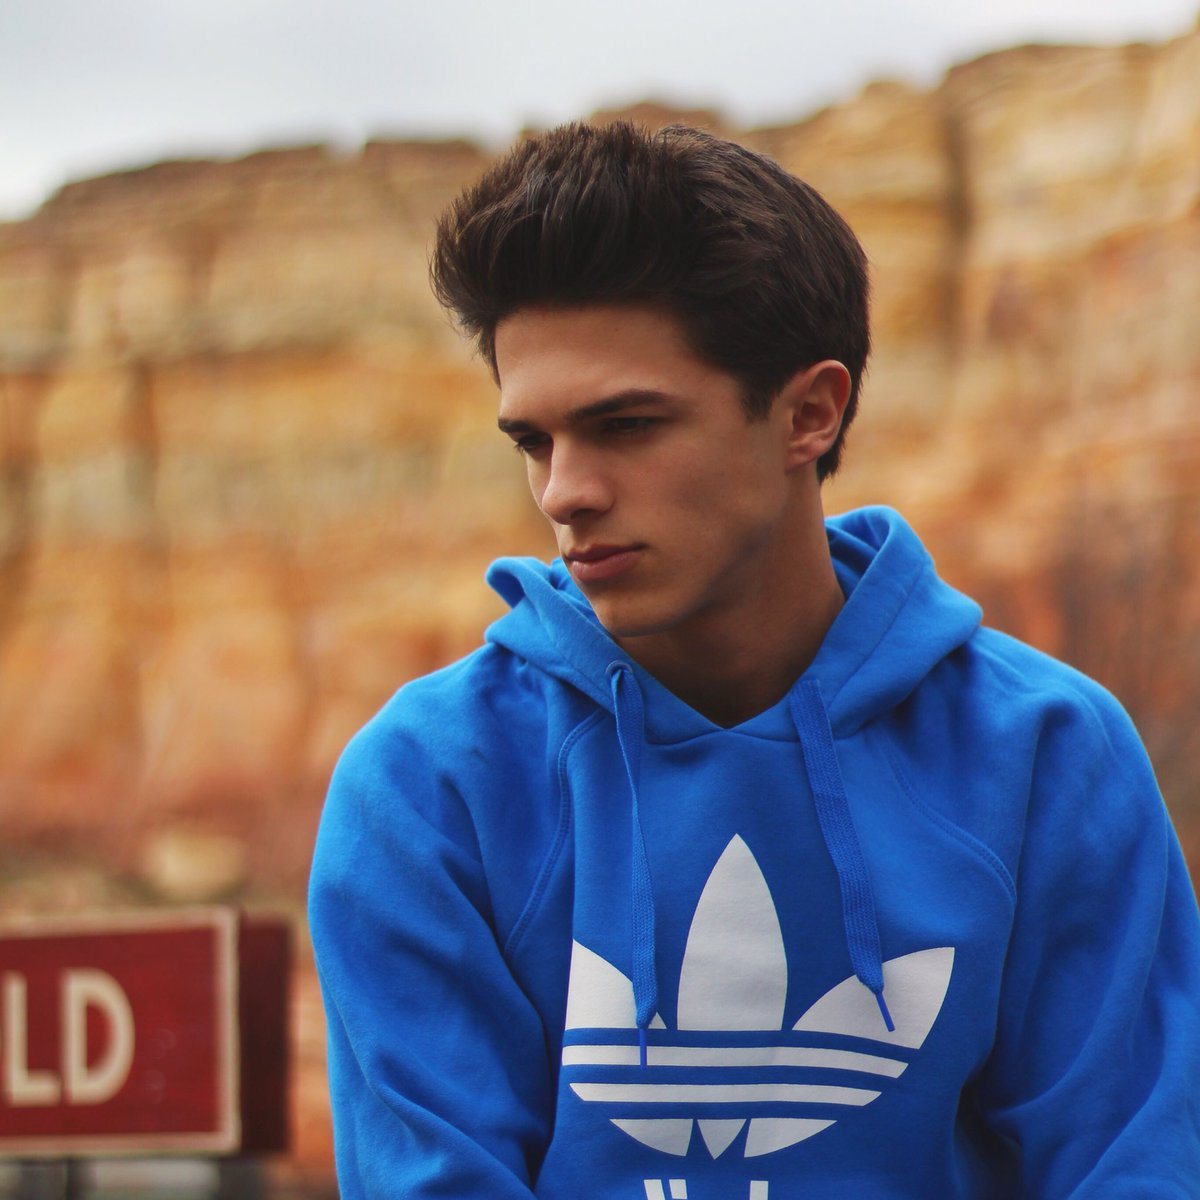 brent rivera on twitter looking really serious so i can get a cool